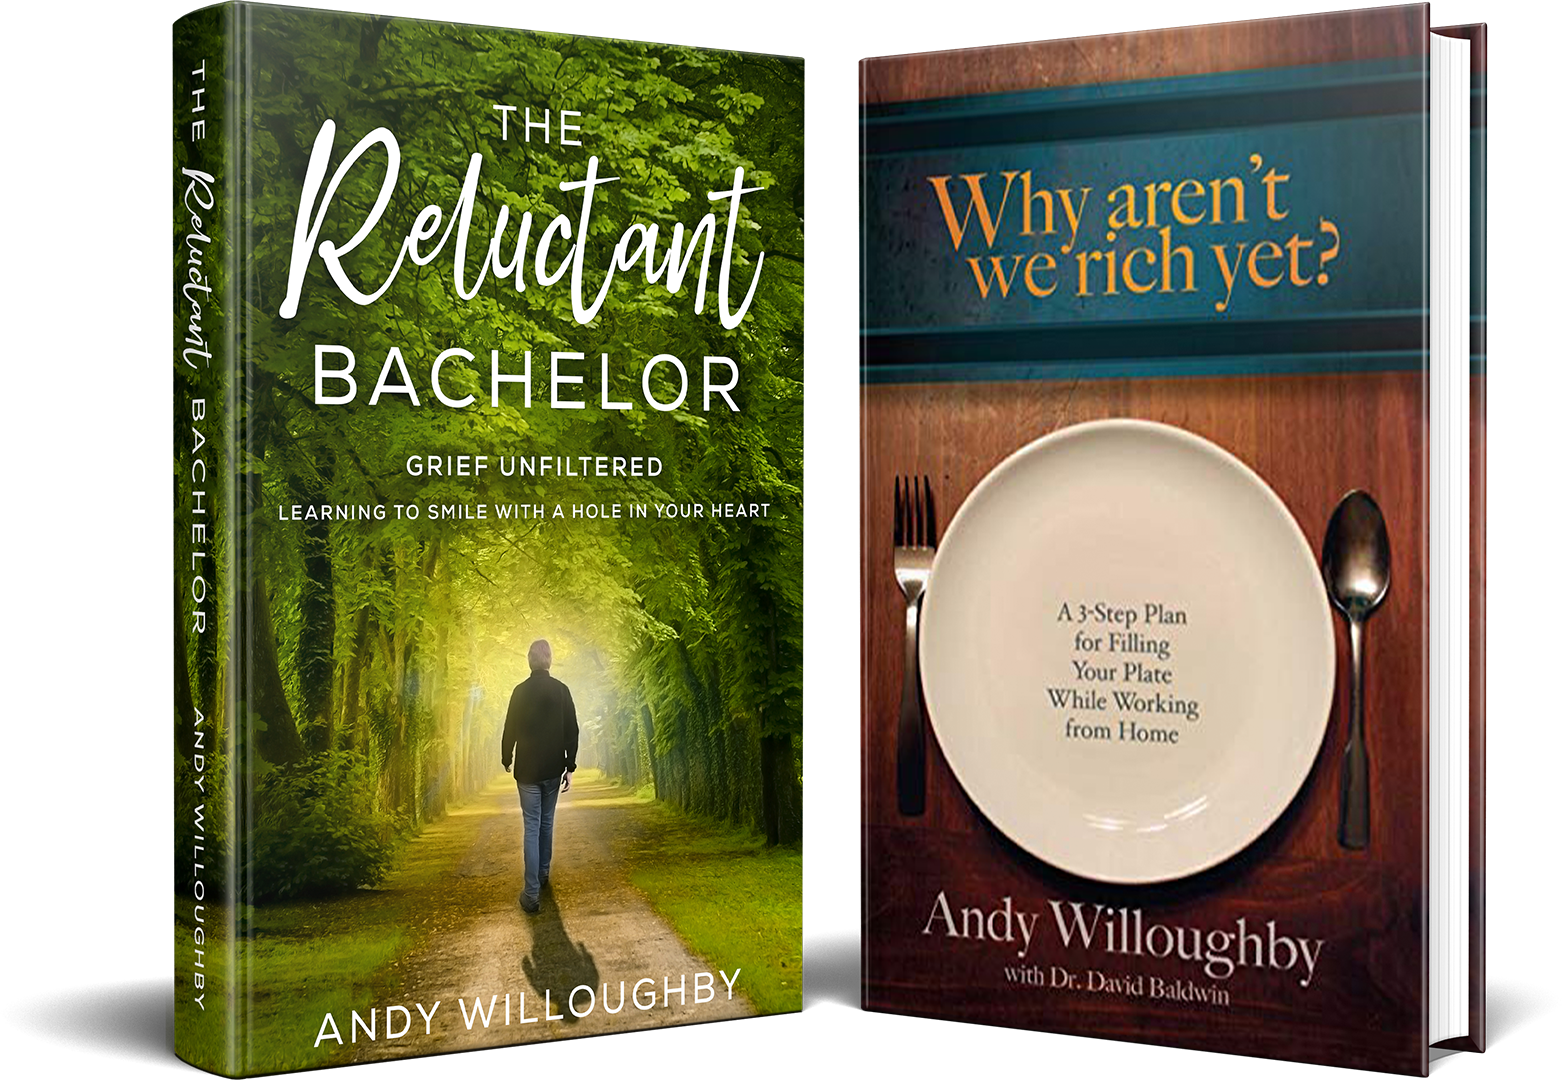 Image of Andy's books